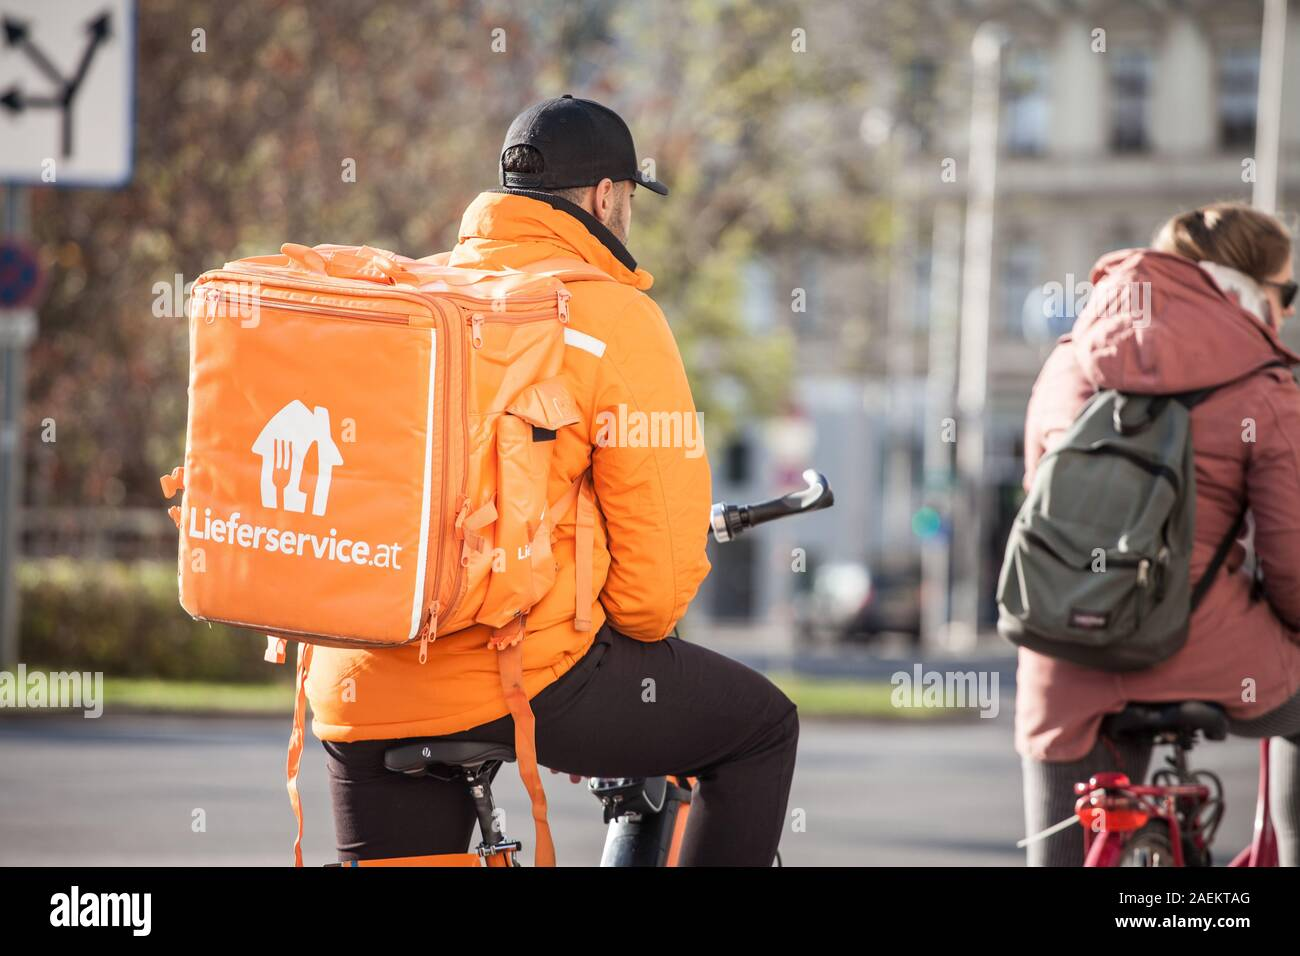 VIENNA, AUSTRIA - NOVEMBER 6, 2019: Lieferservice logo on a delivery guy in Vienna. Also called Lieferando, it is a subsidiary of Takeaway.com, a Dutc Stock Photo